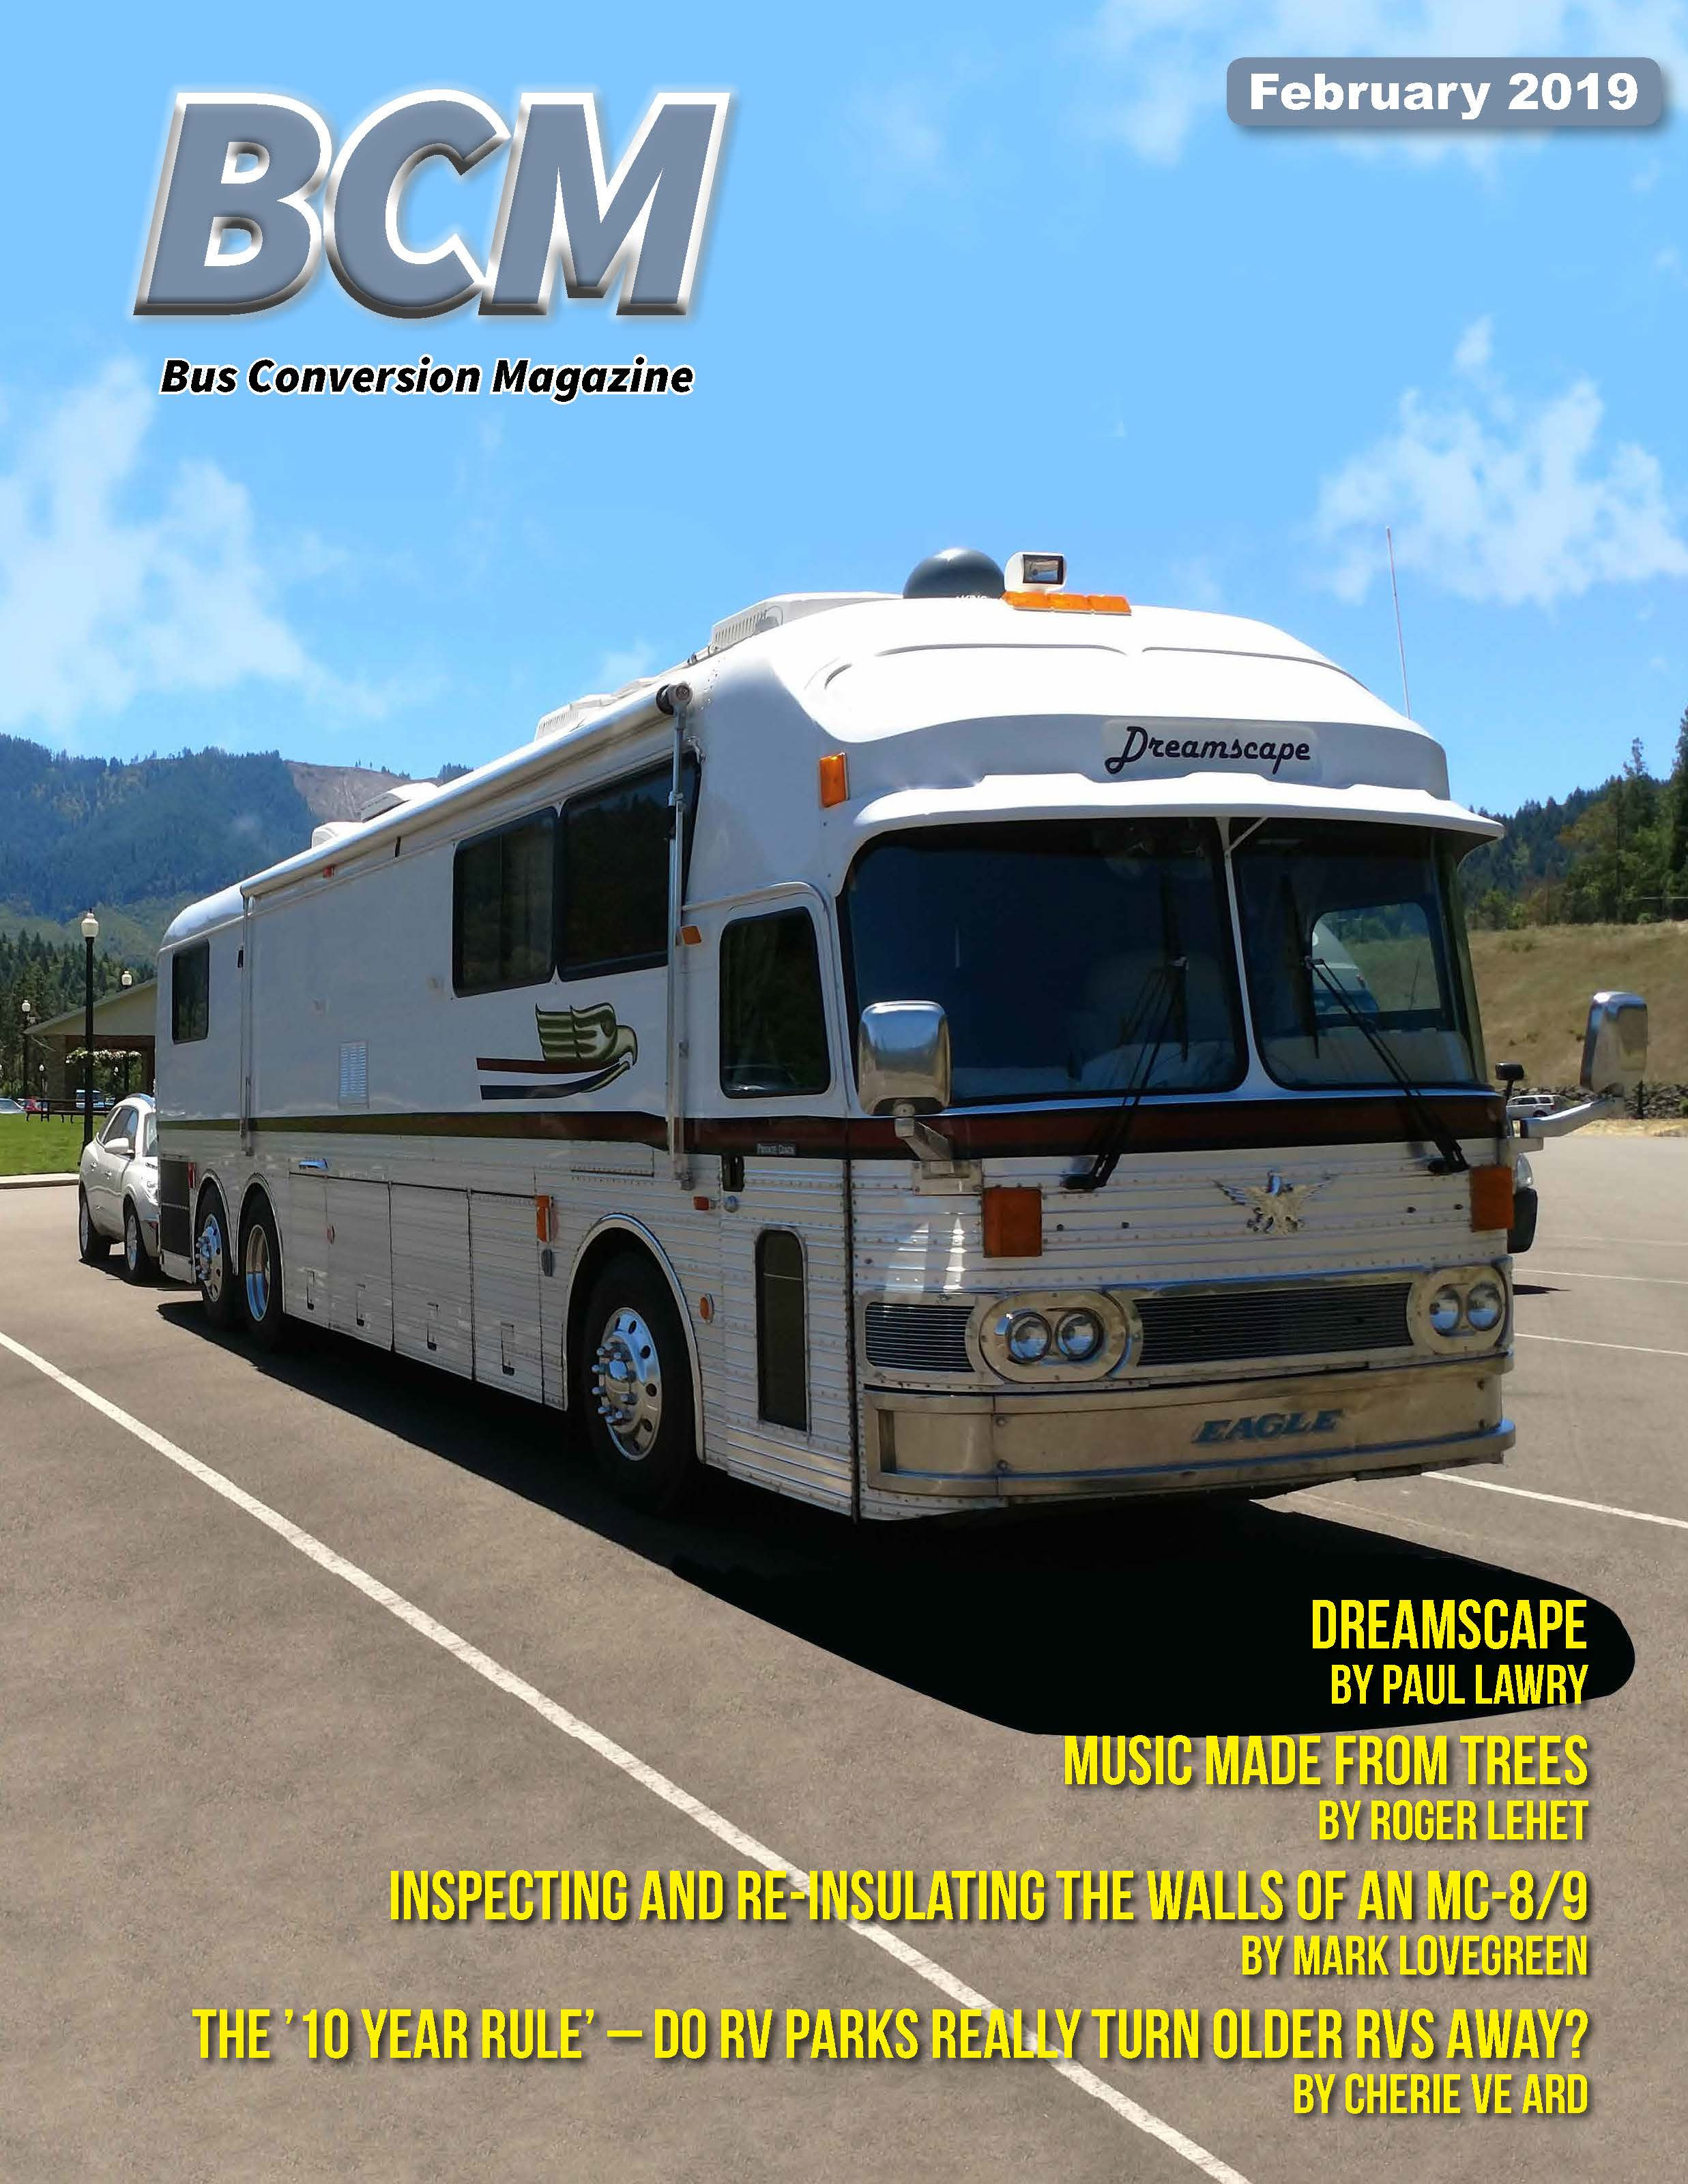 """<a href=""""""""><img class=""""spu-open-10240"""" src=""""https://www.busconversionmagazine.com/wp-content/uploads/2019/02/Feabruary-Issue-2019-JE8_Page_2.jpg""""></a>"""